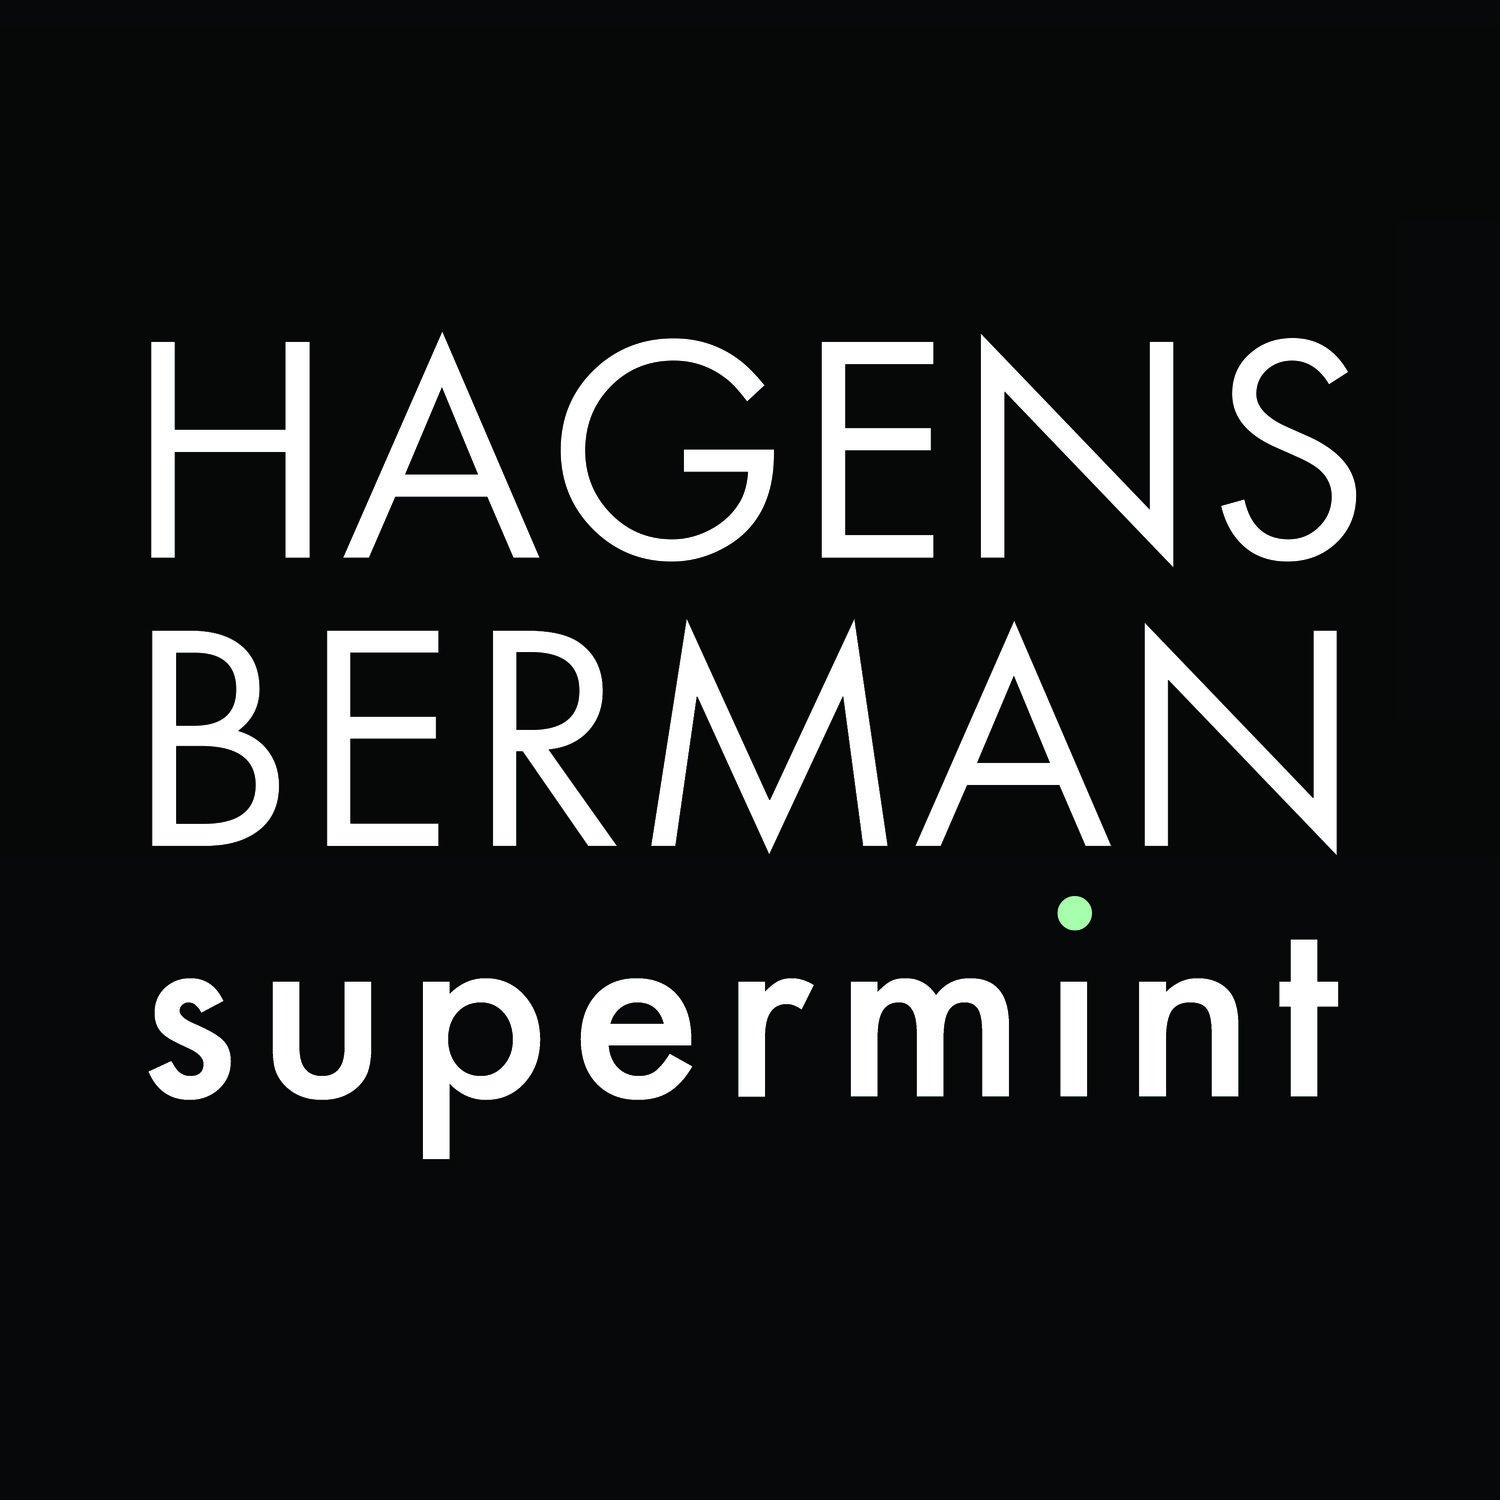 Schedule — Hagens Berman | Supermint